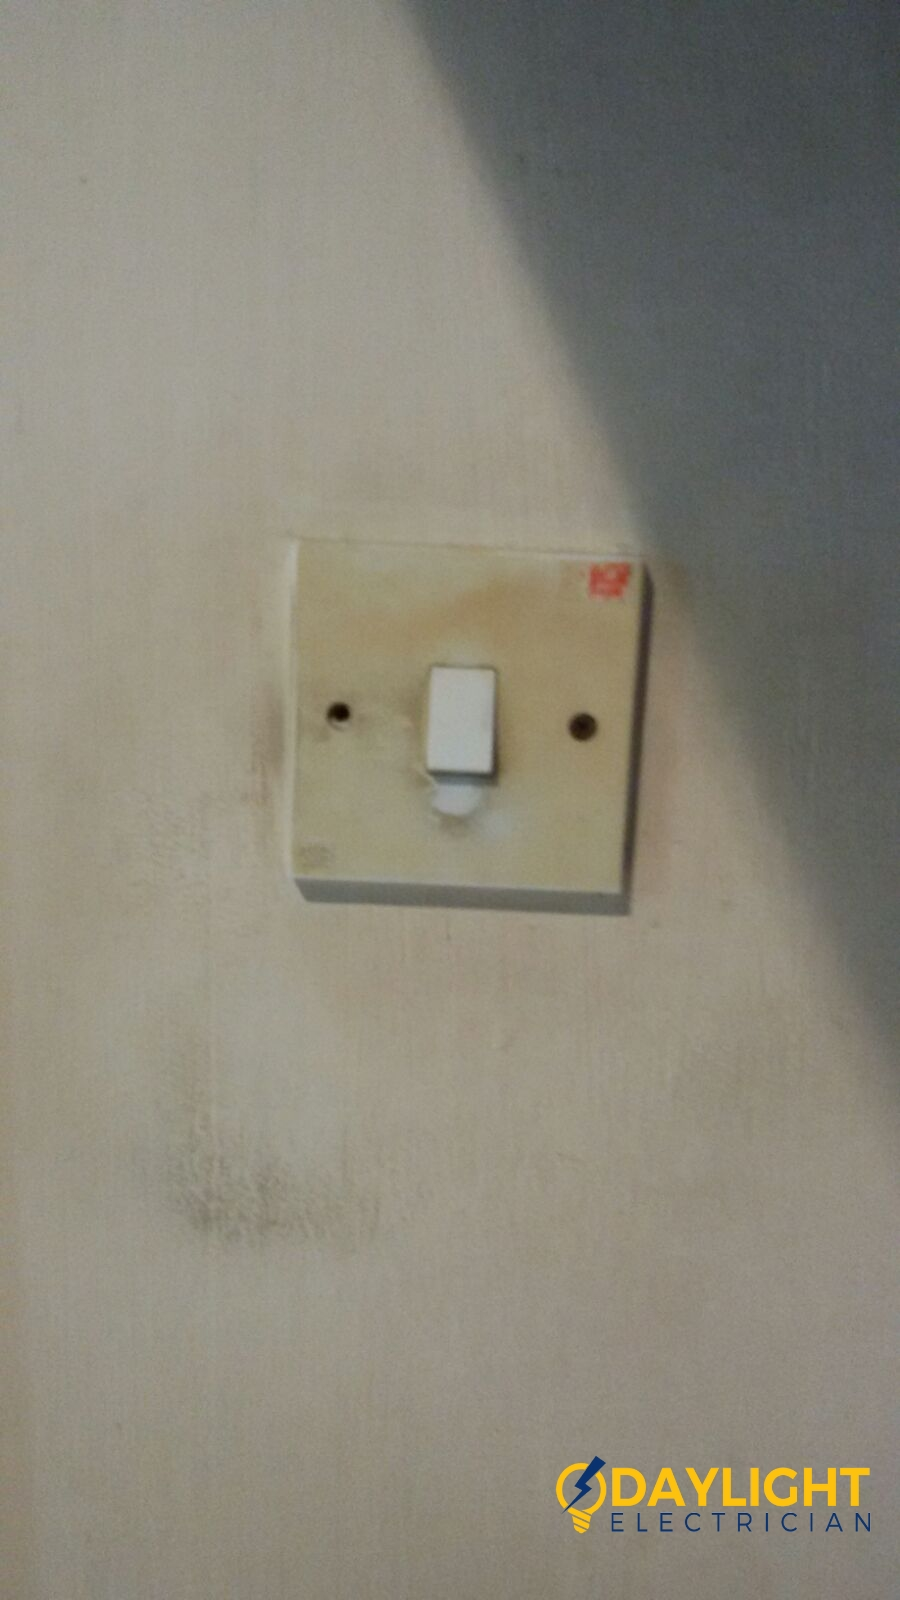 replace-light-switch-electrician-singapore-bedok-hdb-5